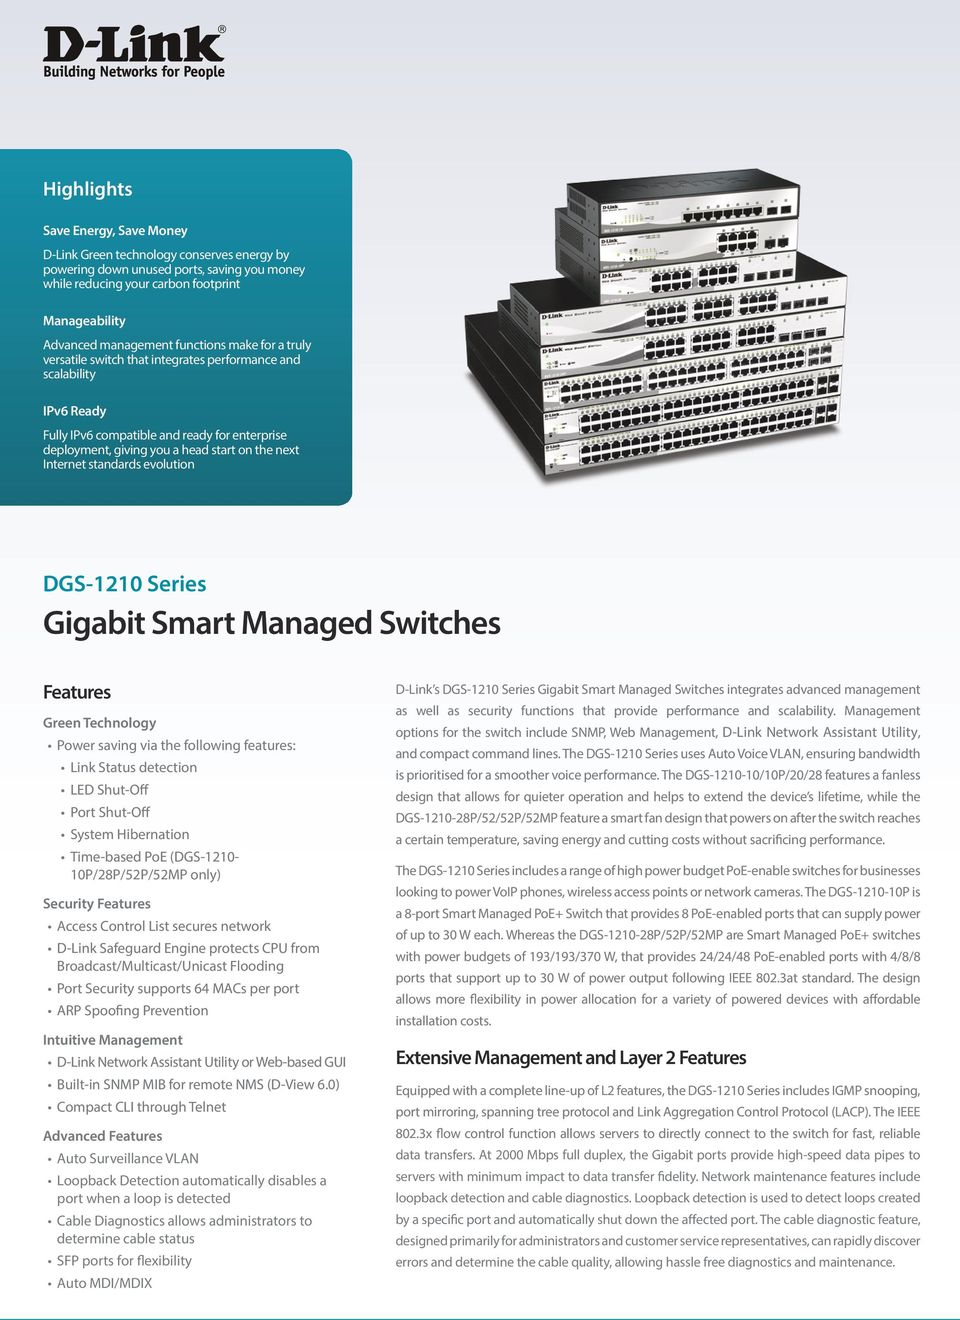 Internet standards evolution DGS-1210 Series Gigabit Smart Managed Switches Features Green Technology Power saving via the following features: Link Status detection LED Shut-Off Port Shut-Off System